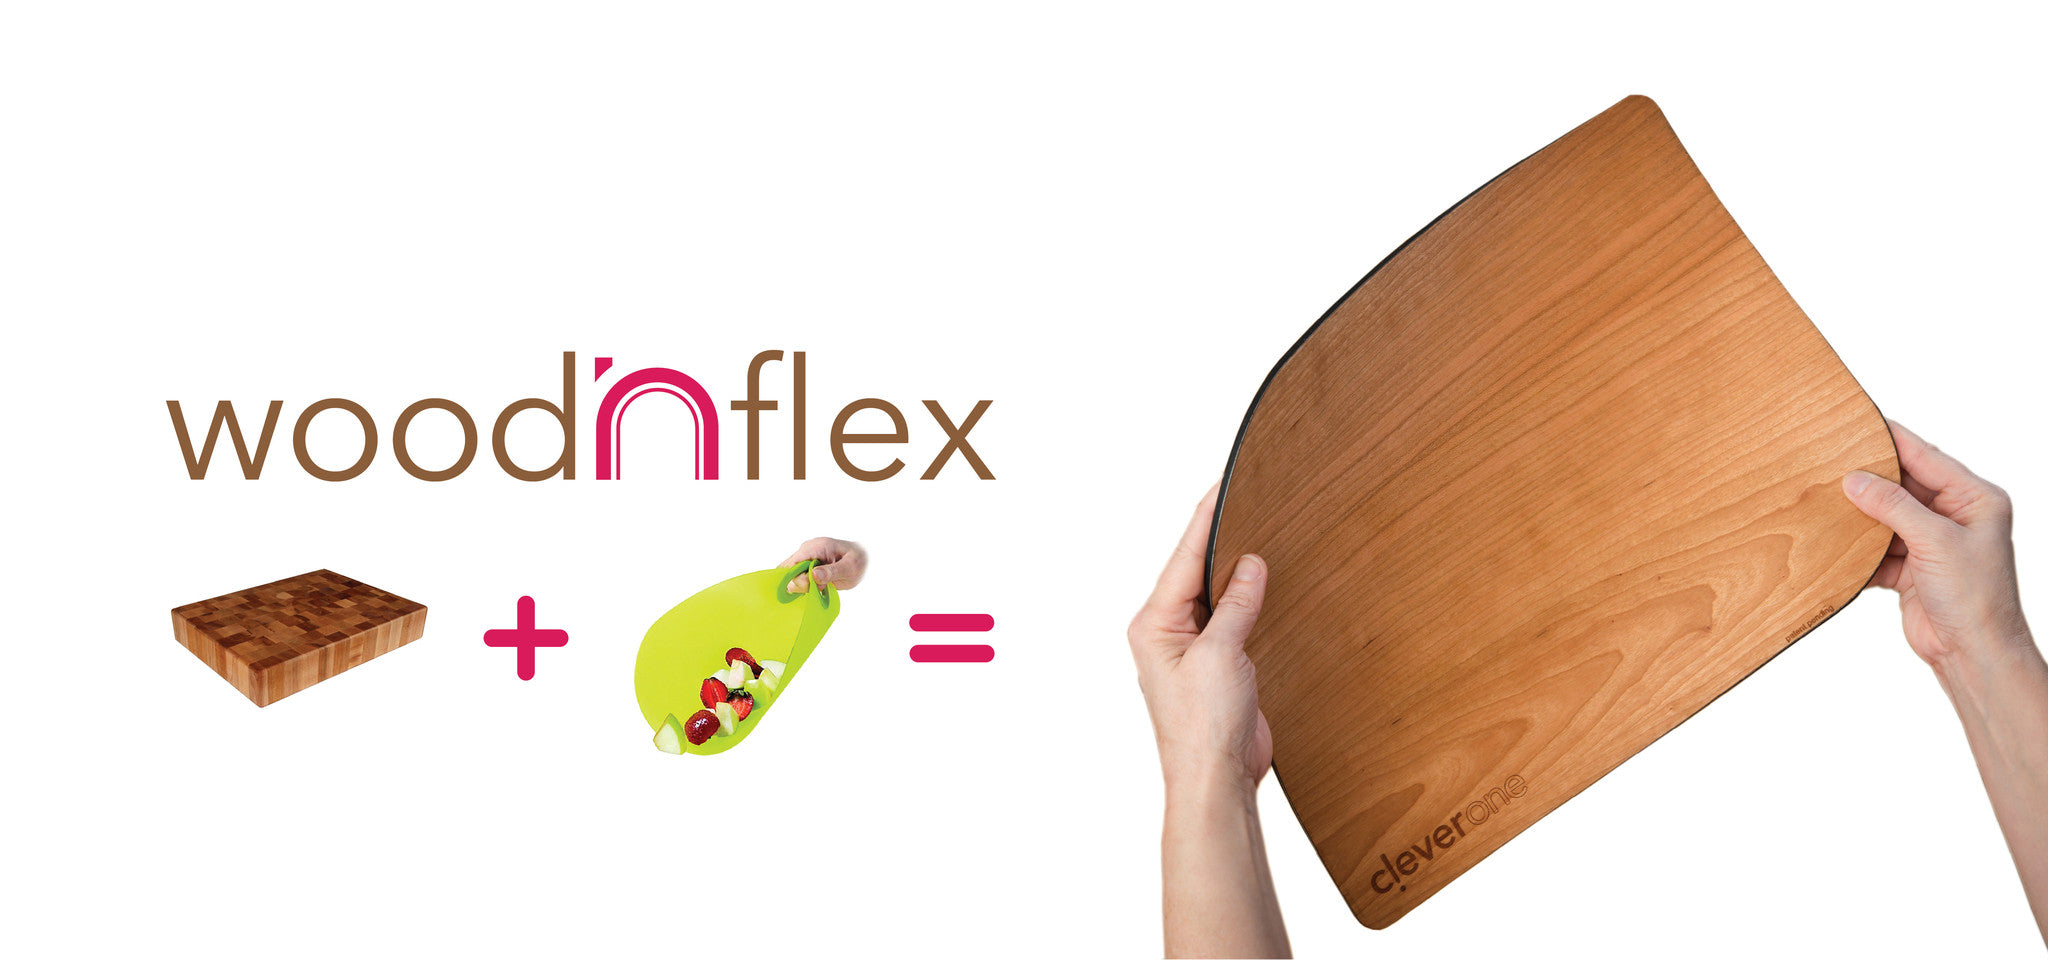 woodNflex combines the luxury of a real wood cutting board with the flexibility of a plastic sheet.